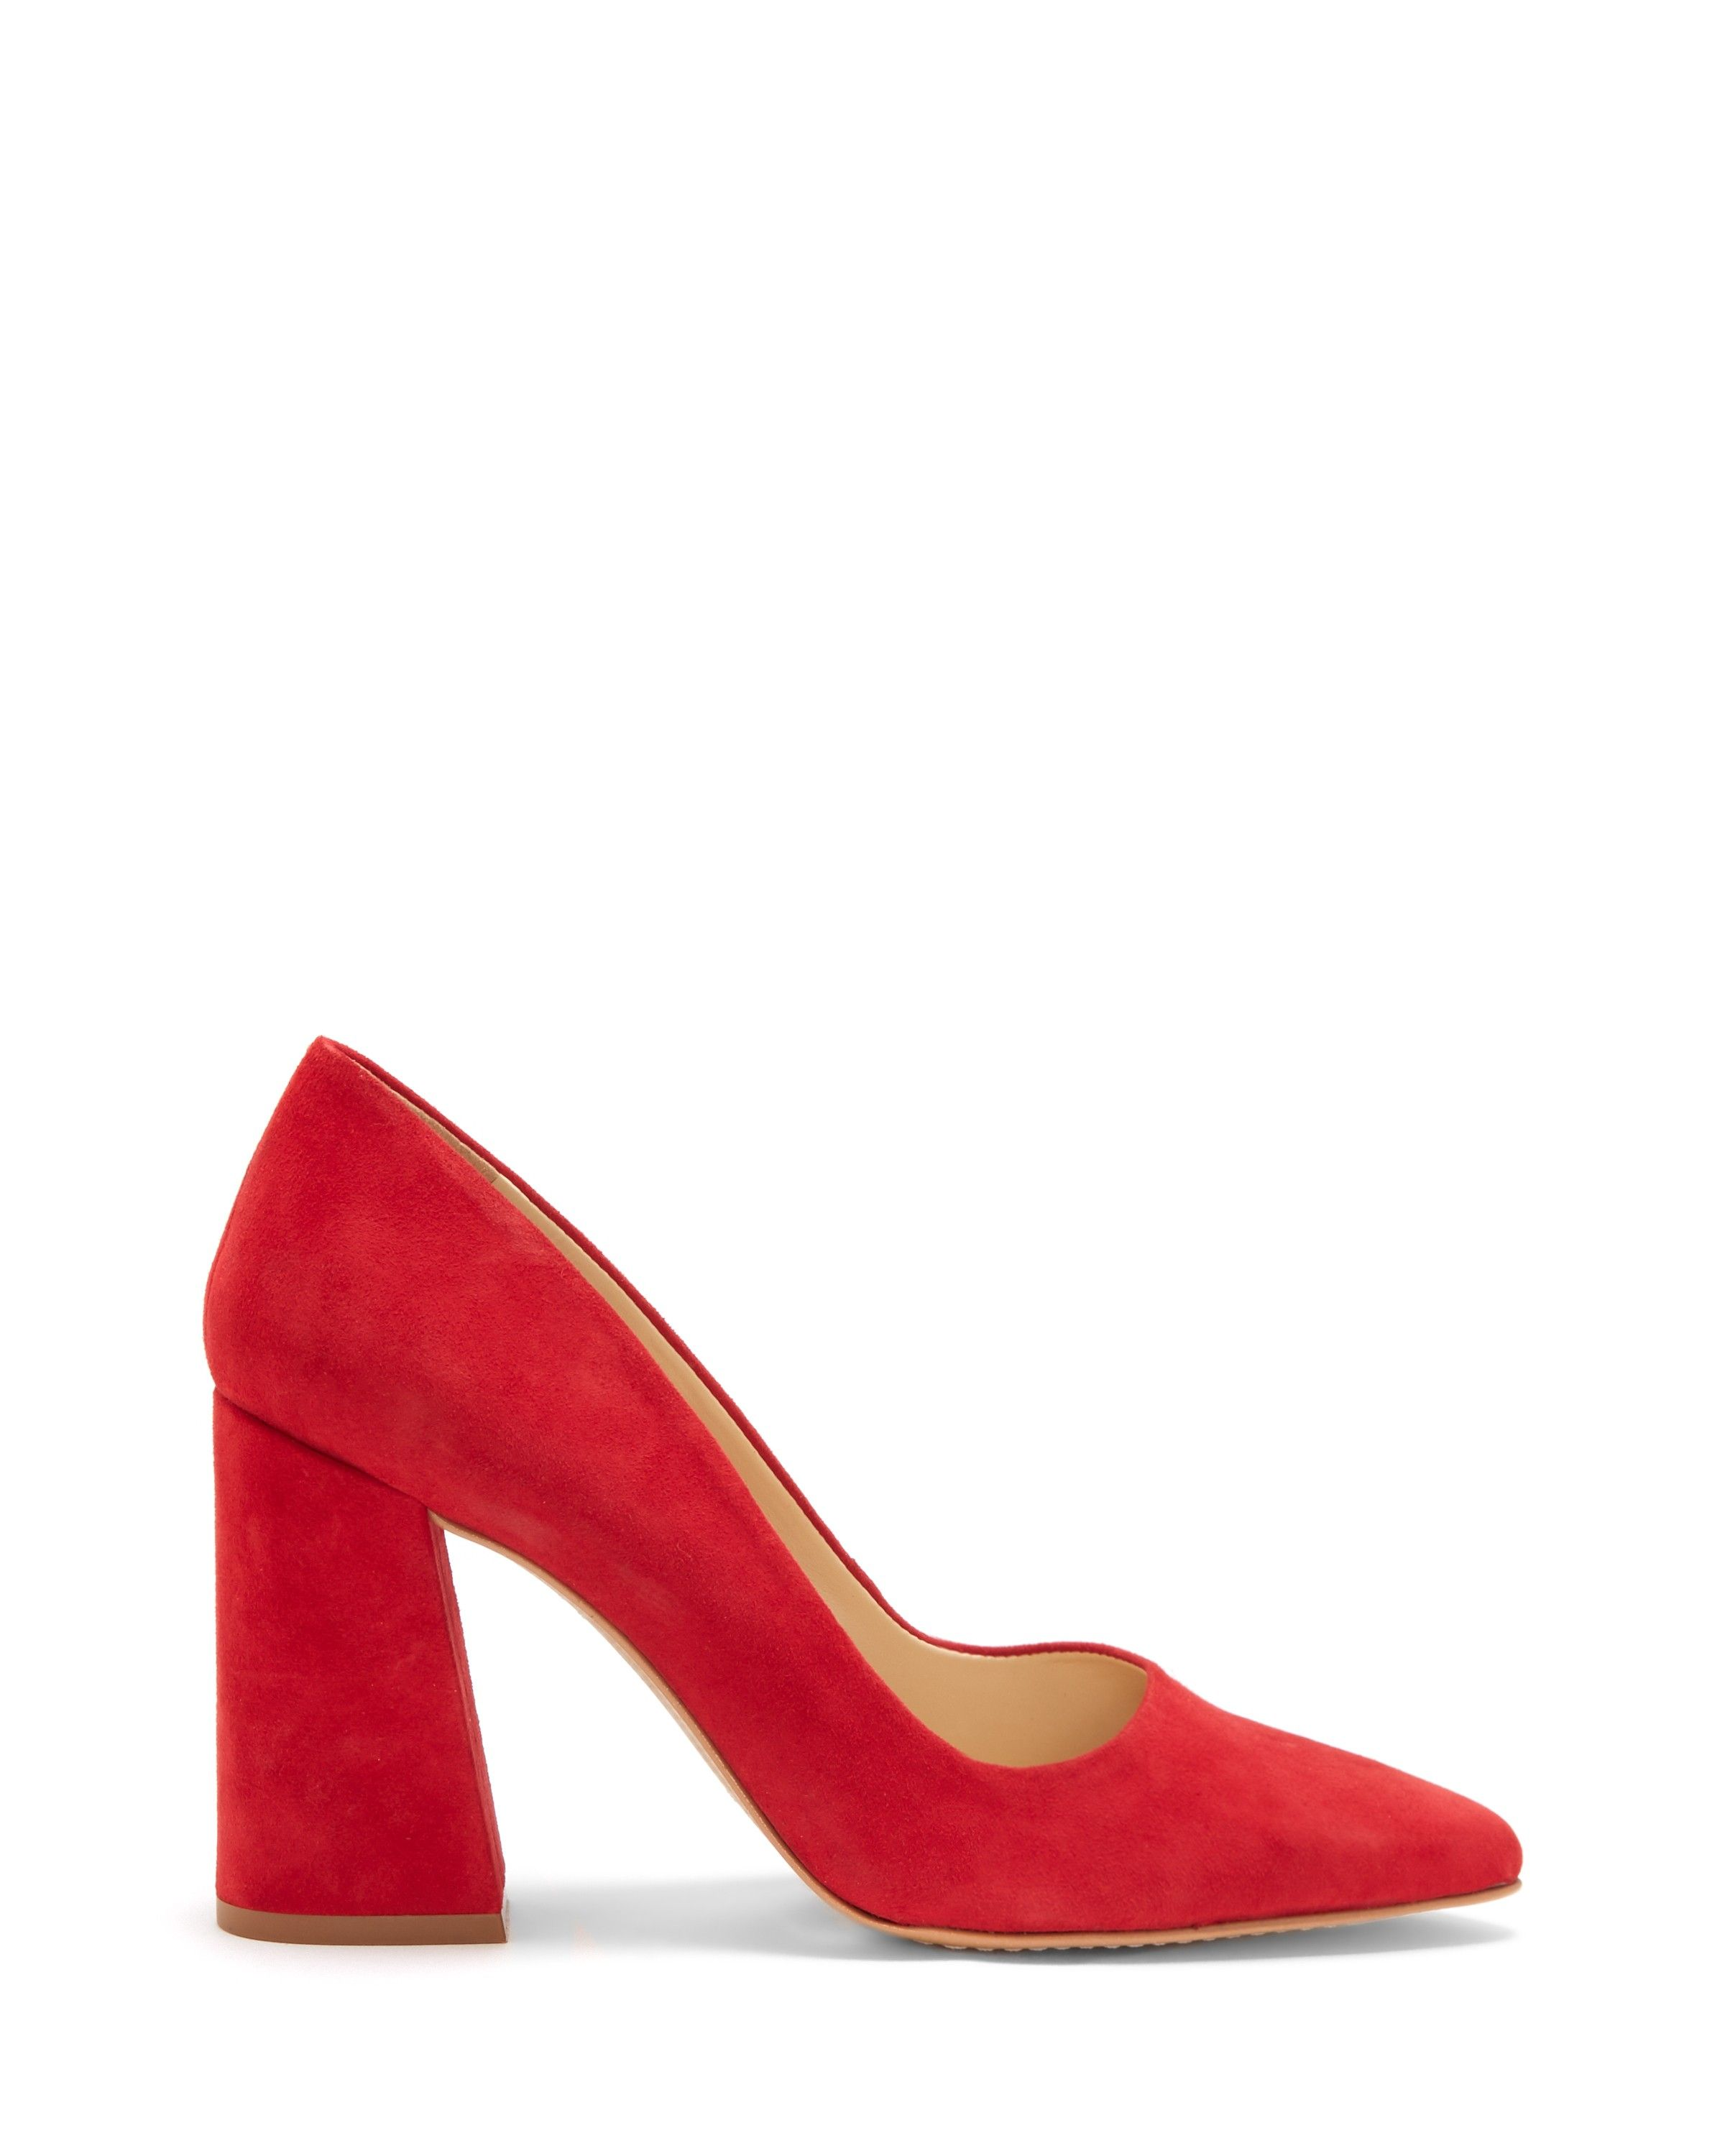 8dfb0b307 VINCE CAMUTO Vince Camuto Talise – Block-heel Pump. #vincecamuto #shoes #